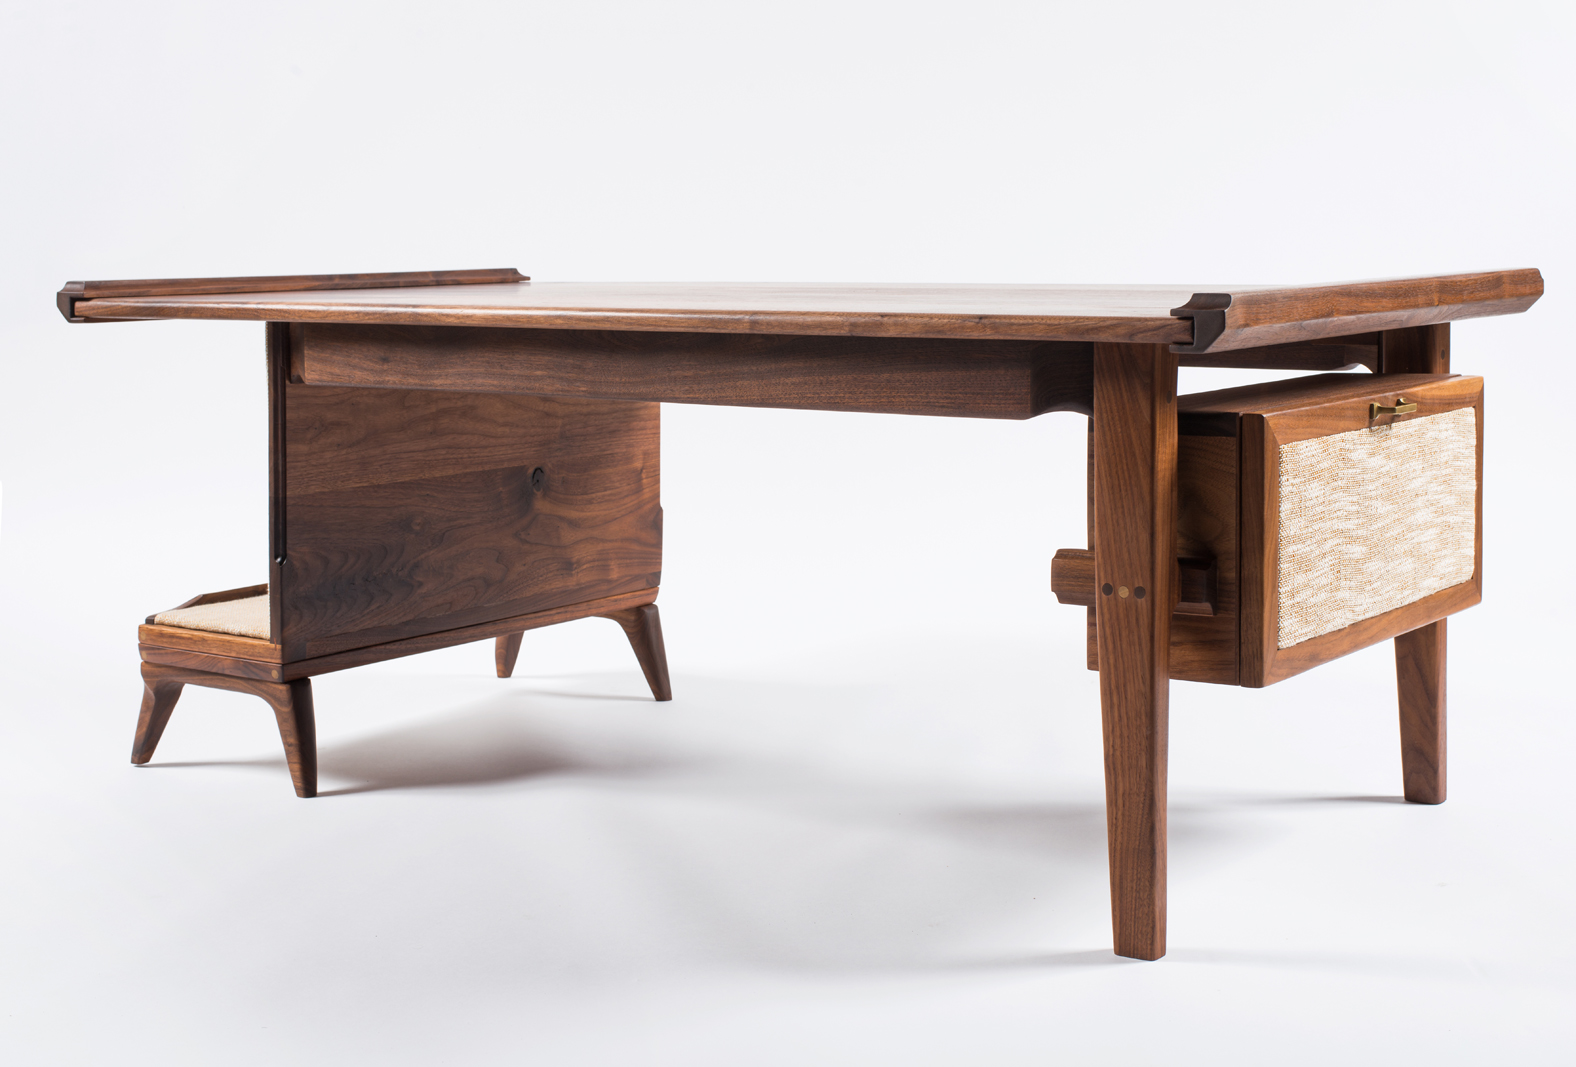 Walnut_Table_03.jpg